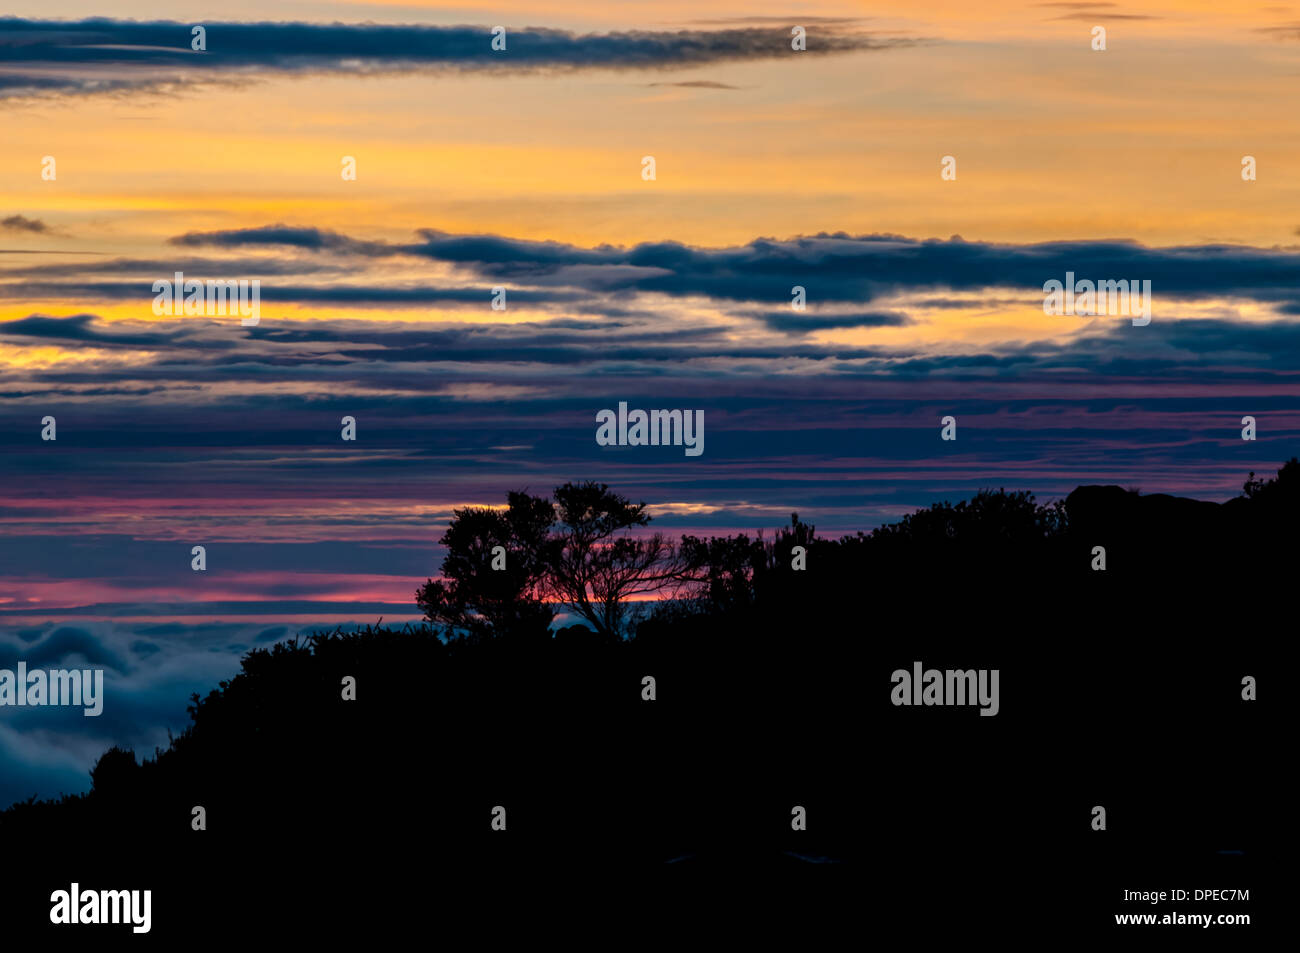 The sunrising over bushes at Kikelelwa Cave Campsite on Kilimanjaro - Stock Image